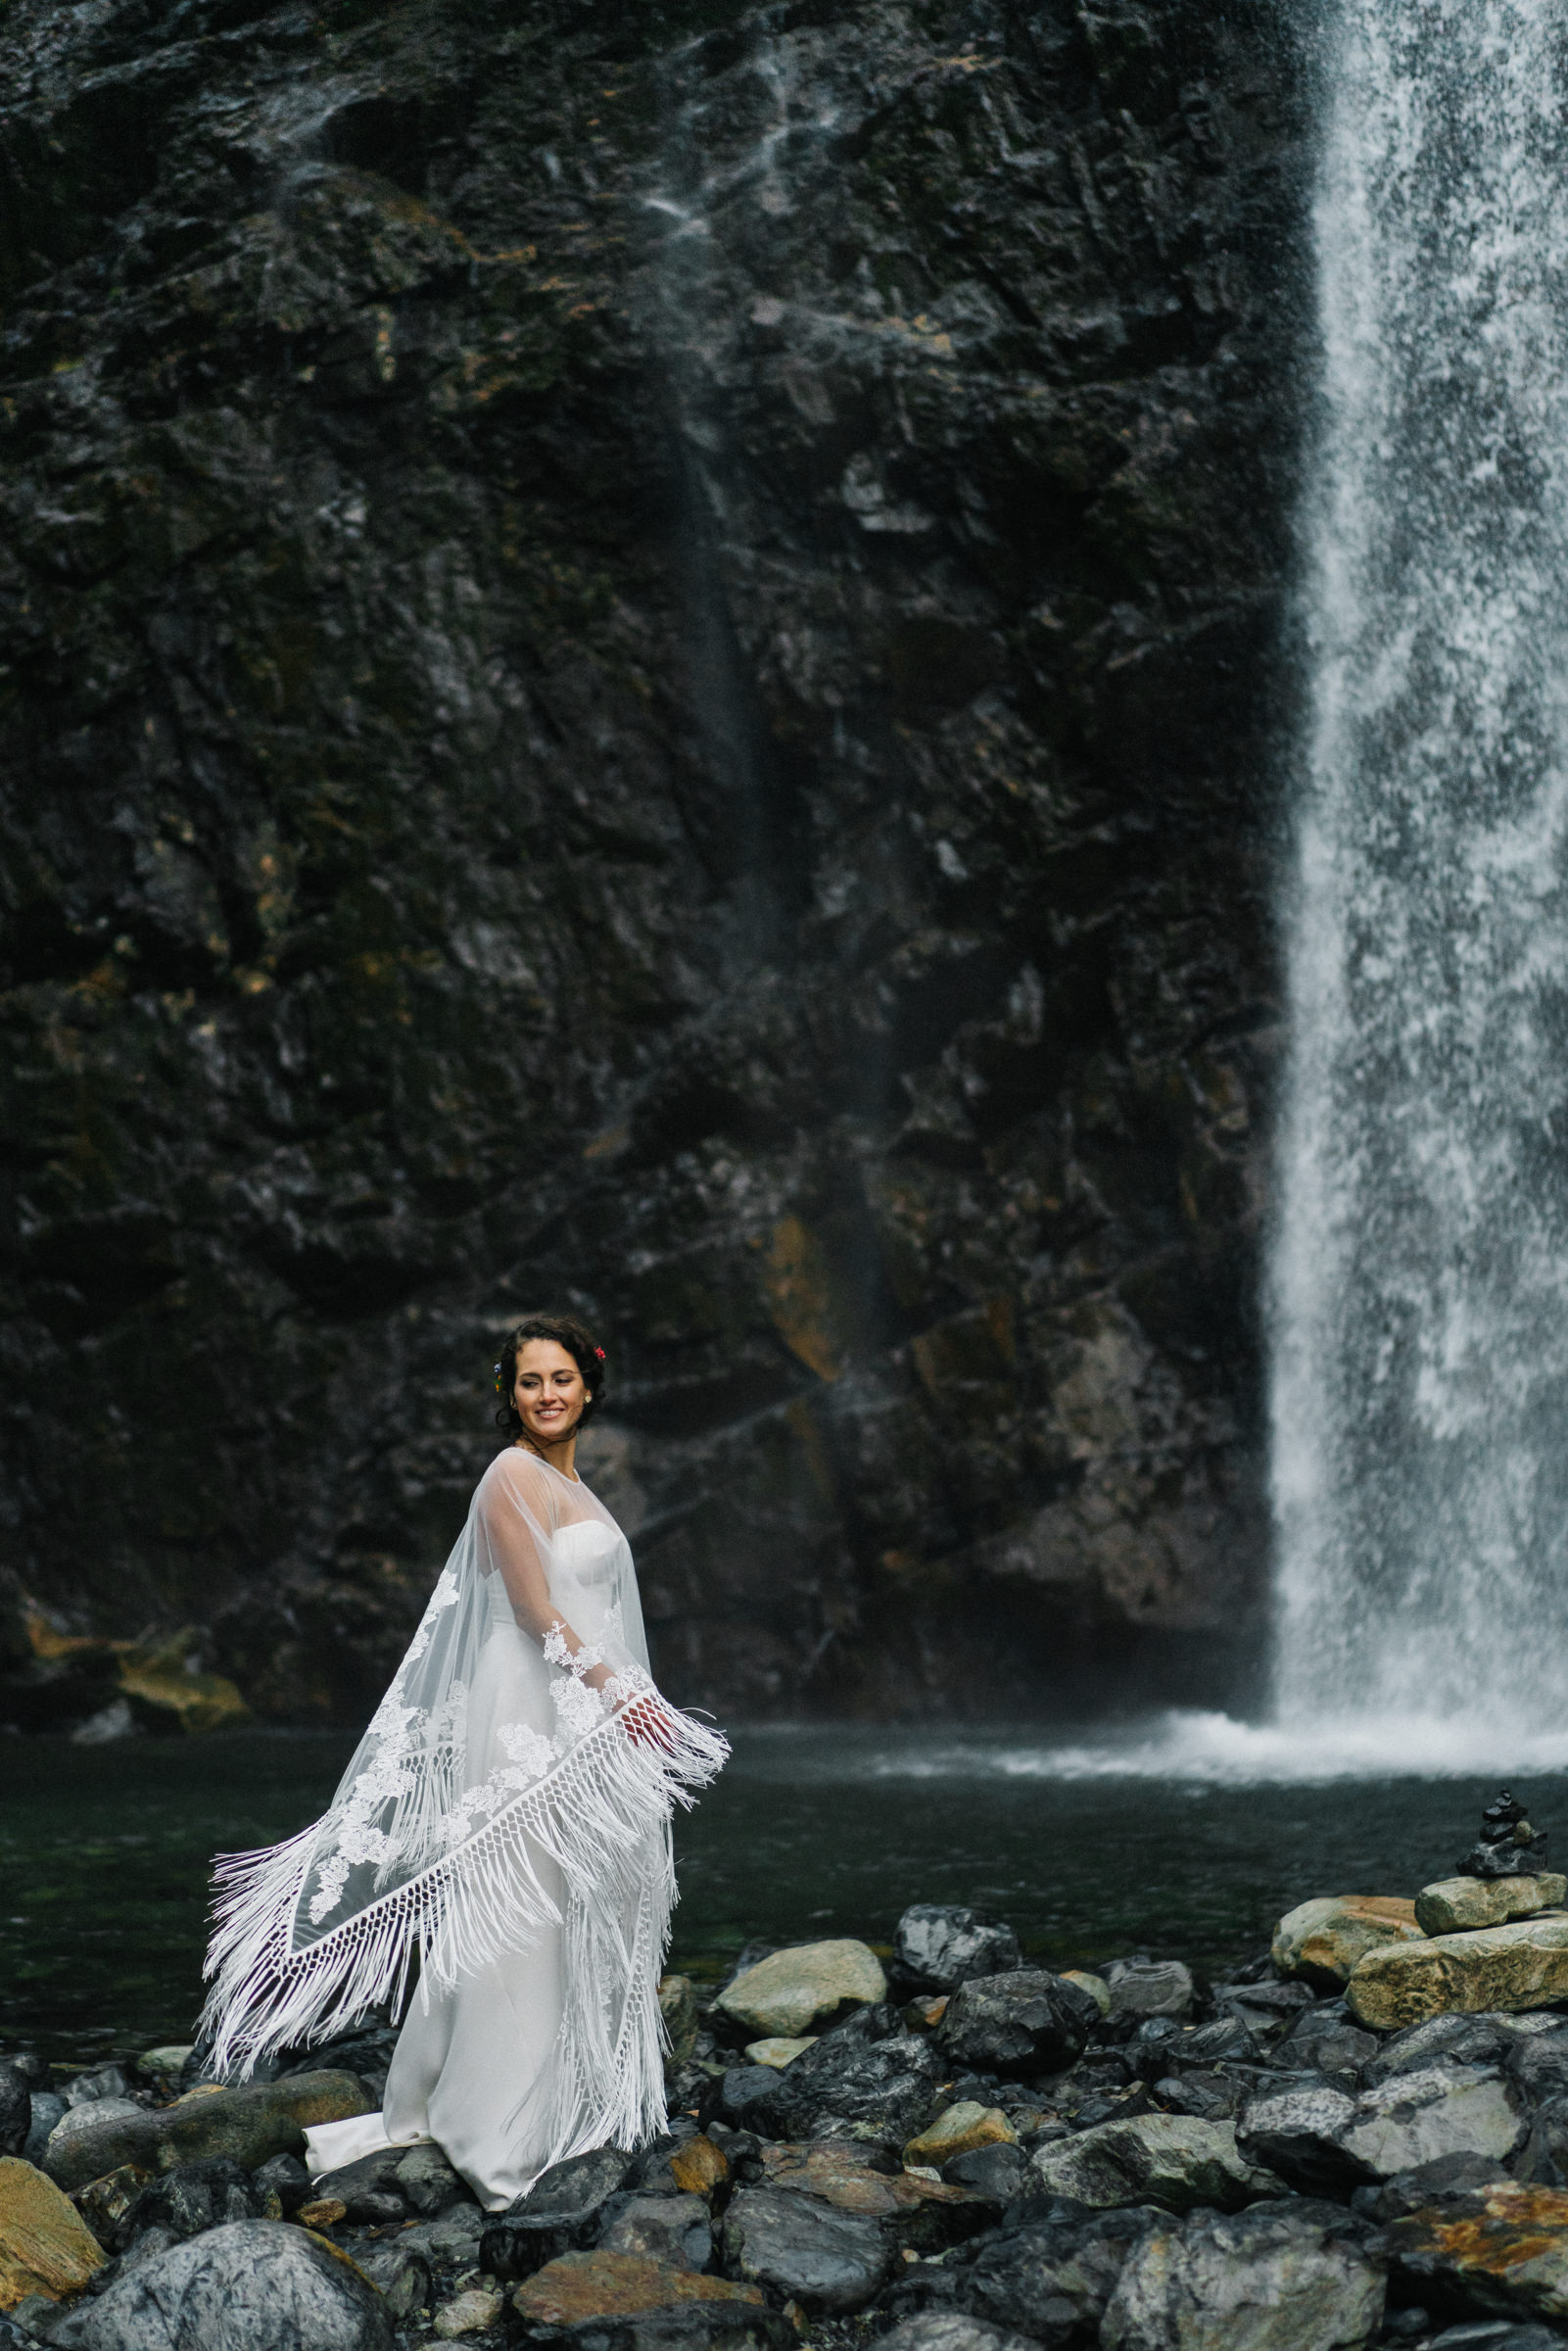 Bridal portrait at waterfall - photo by Sasha Reiko Photography